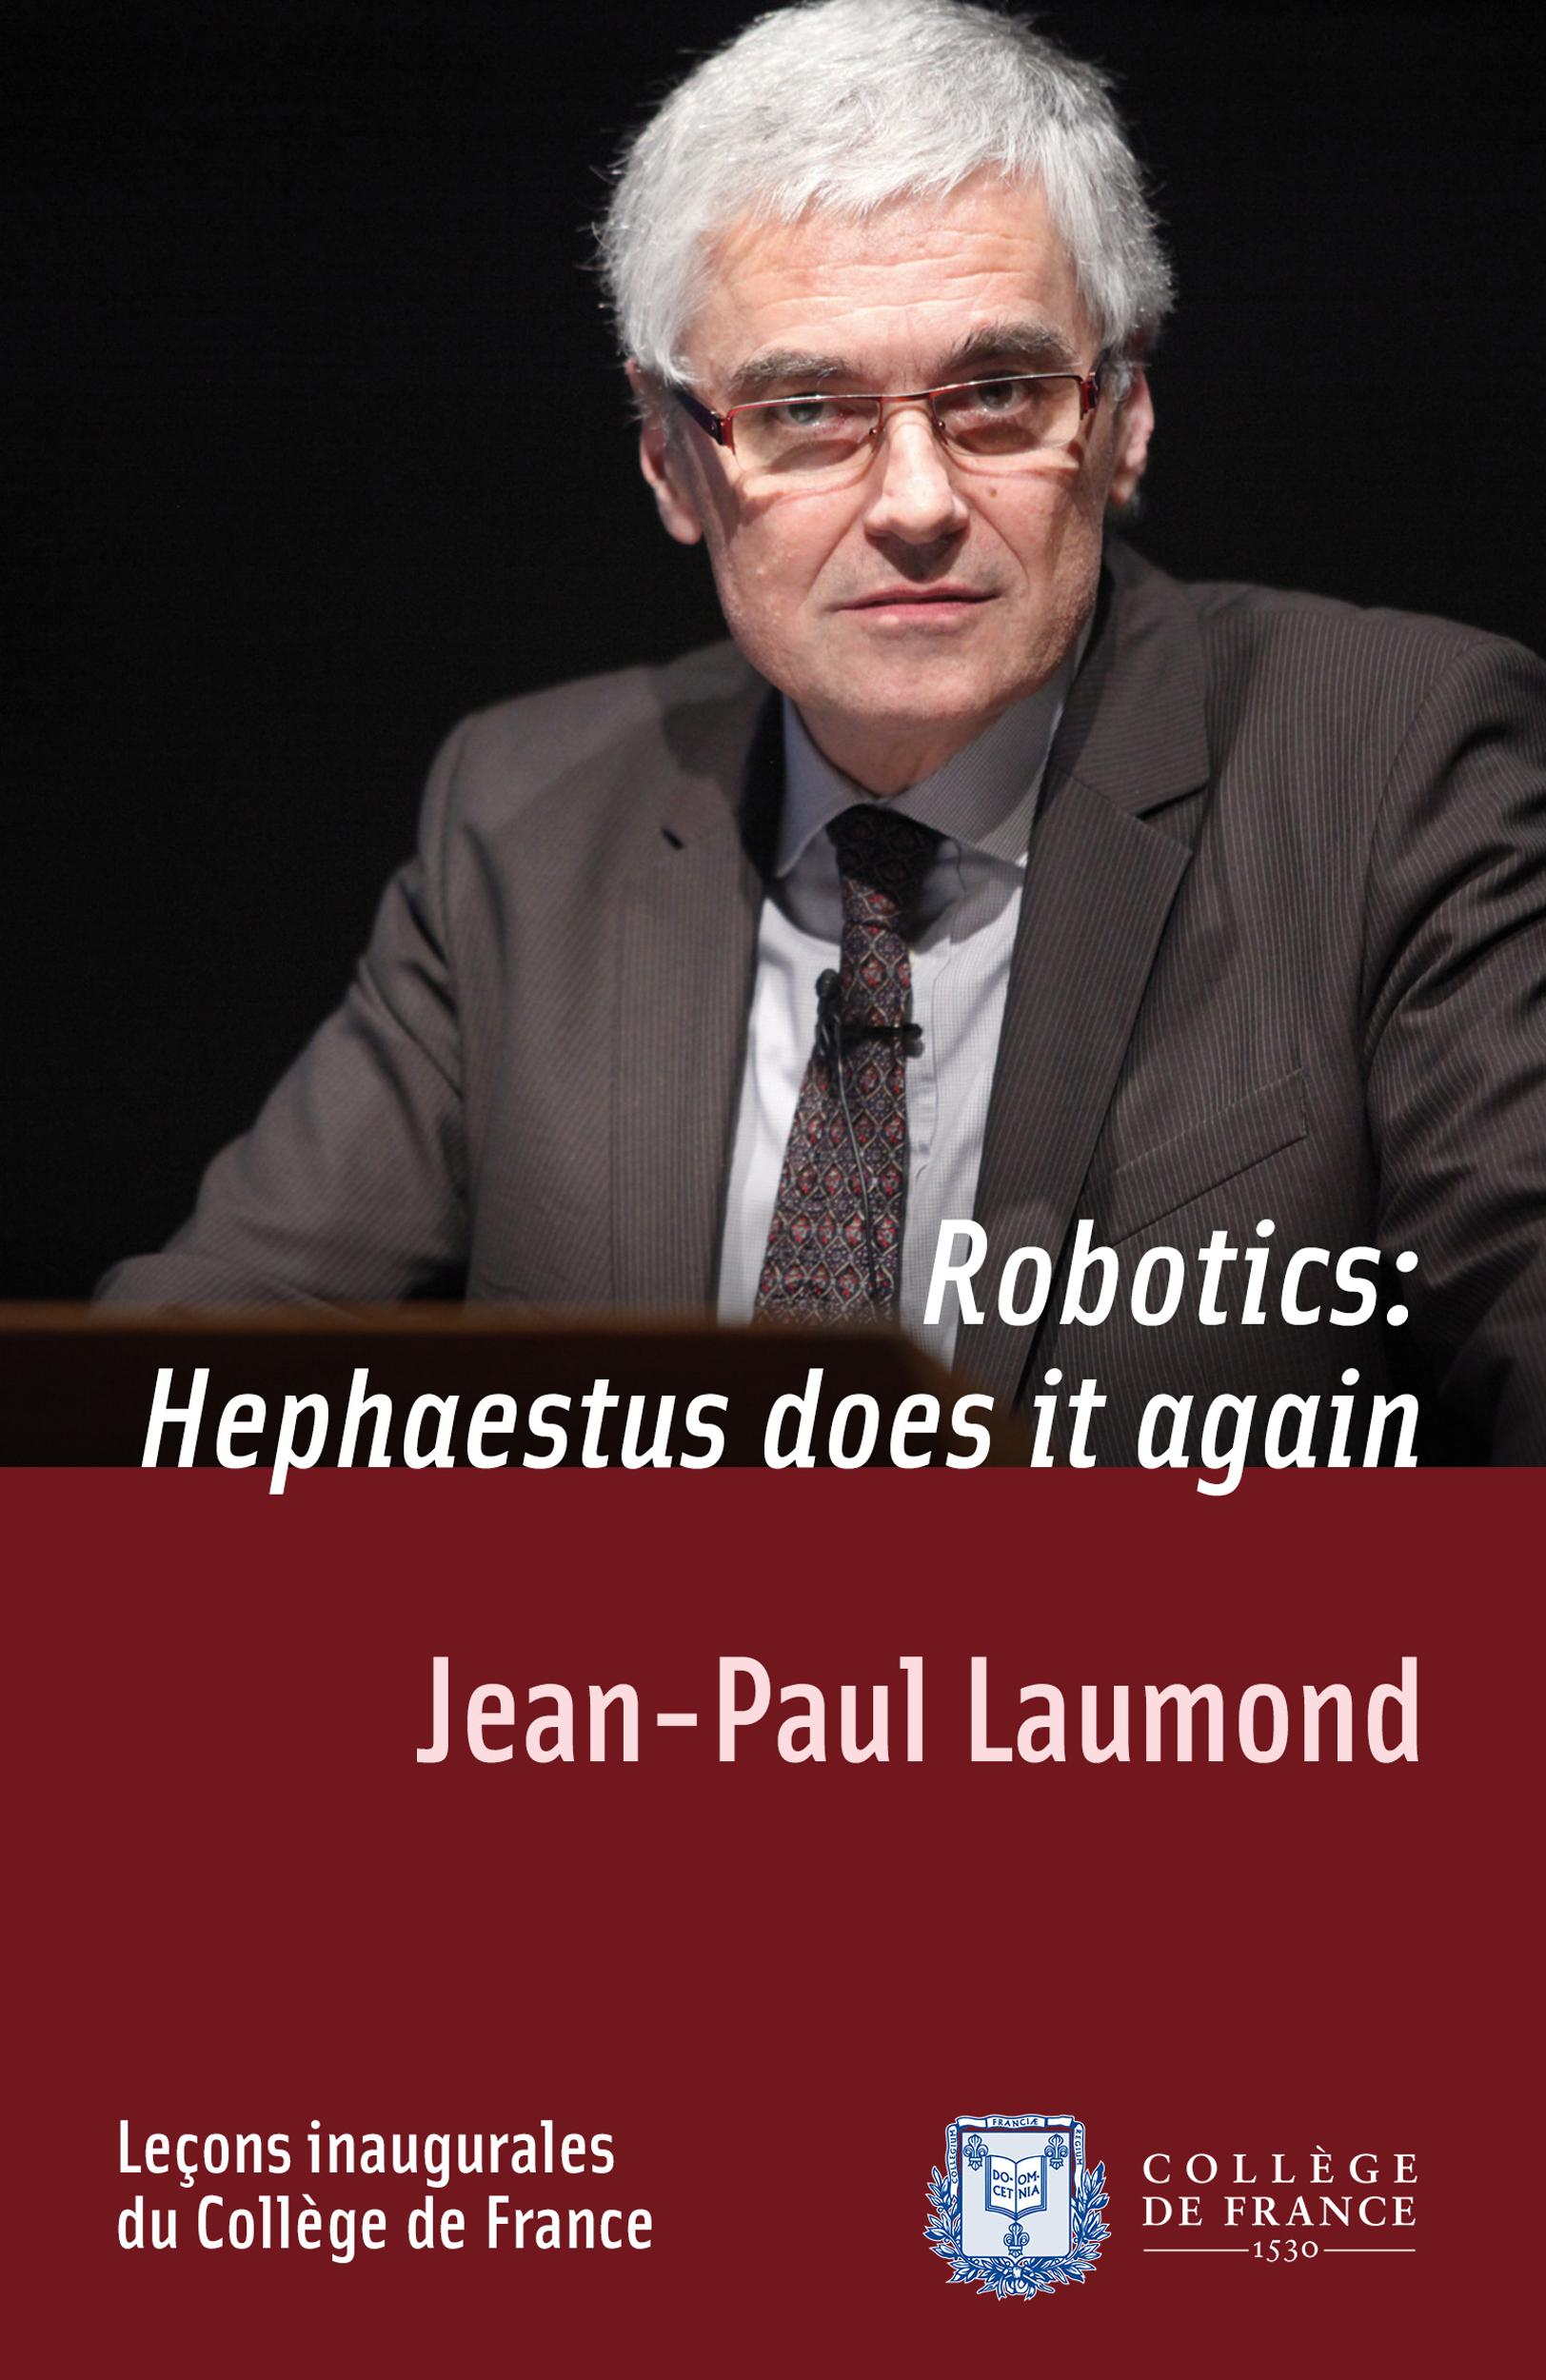 Robotics: Hephaestus does it again, INAUGURAL LECTURE DELIVERED ON THURSDAY 19JANUARY2012